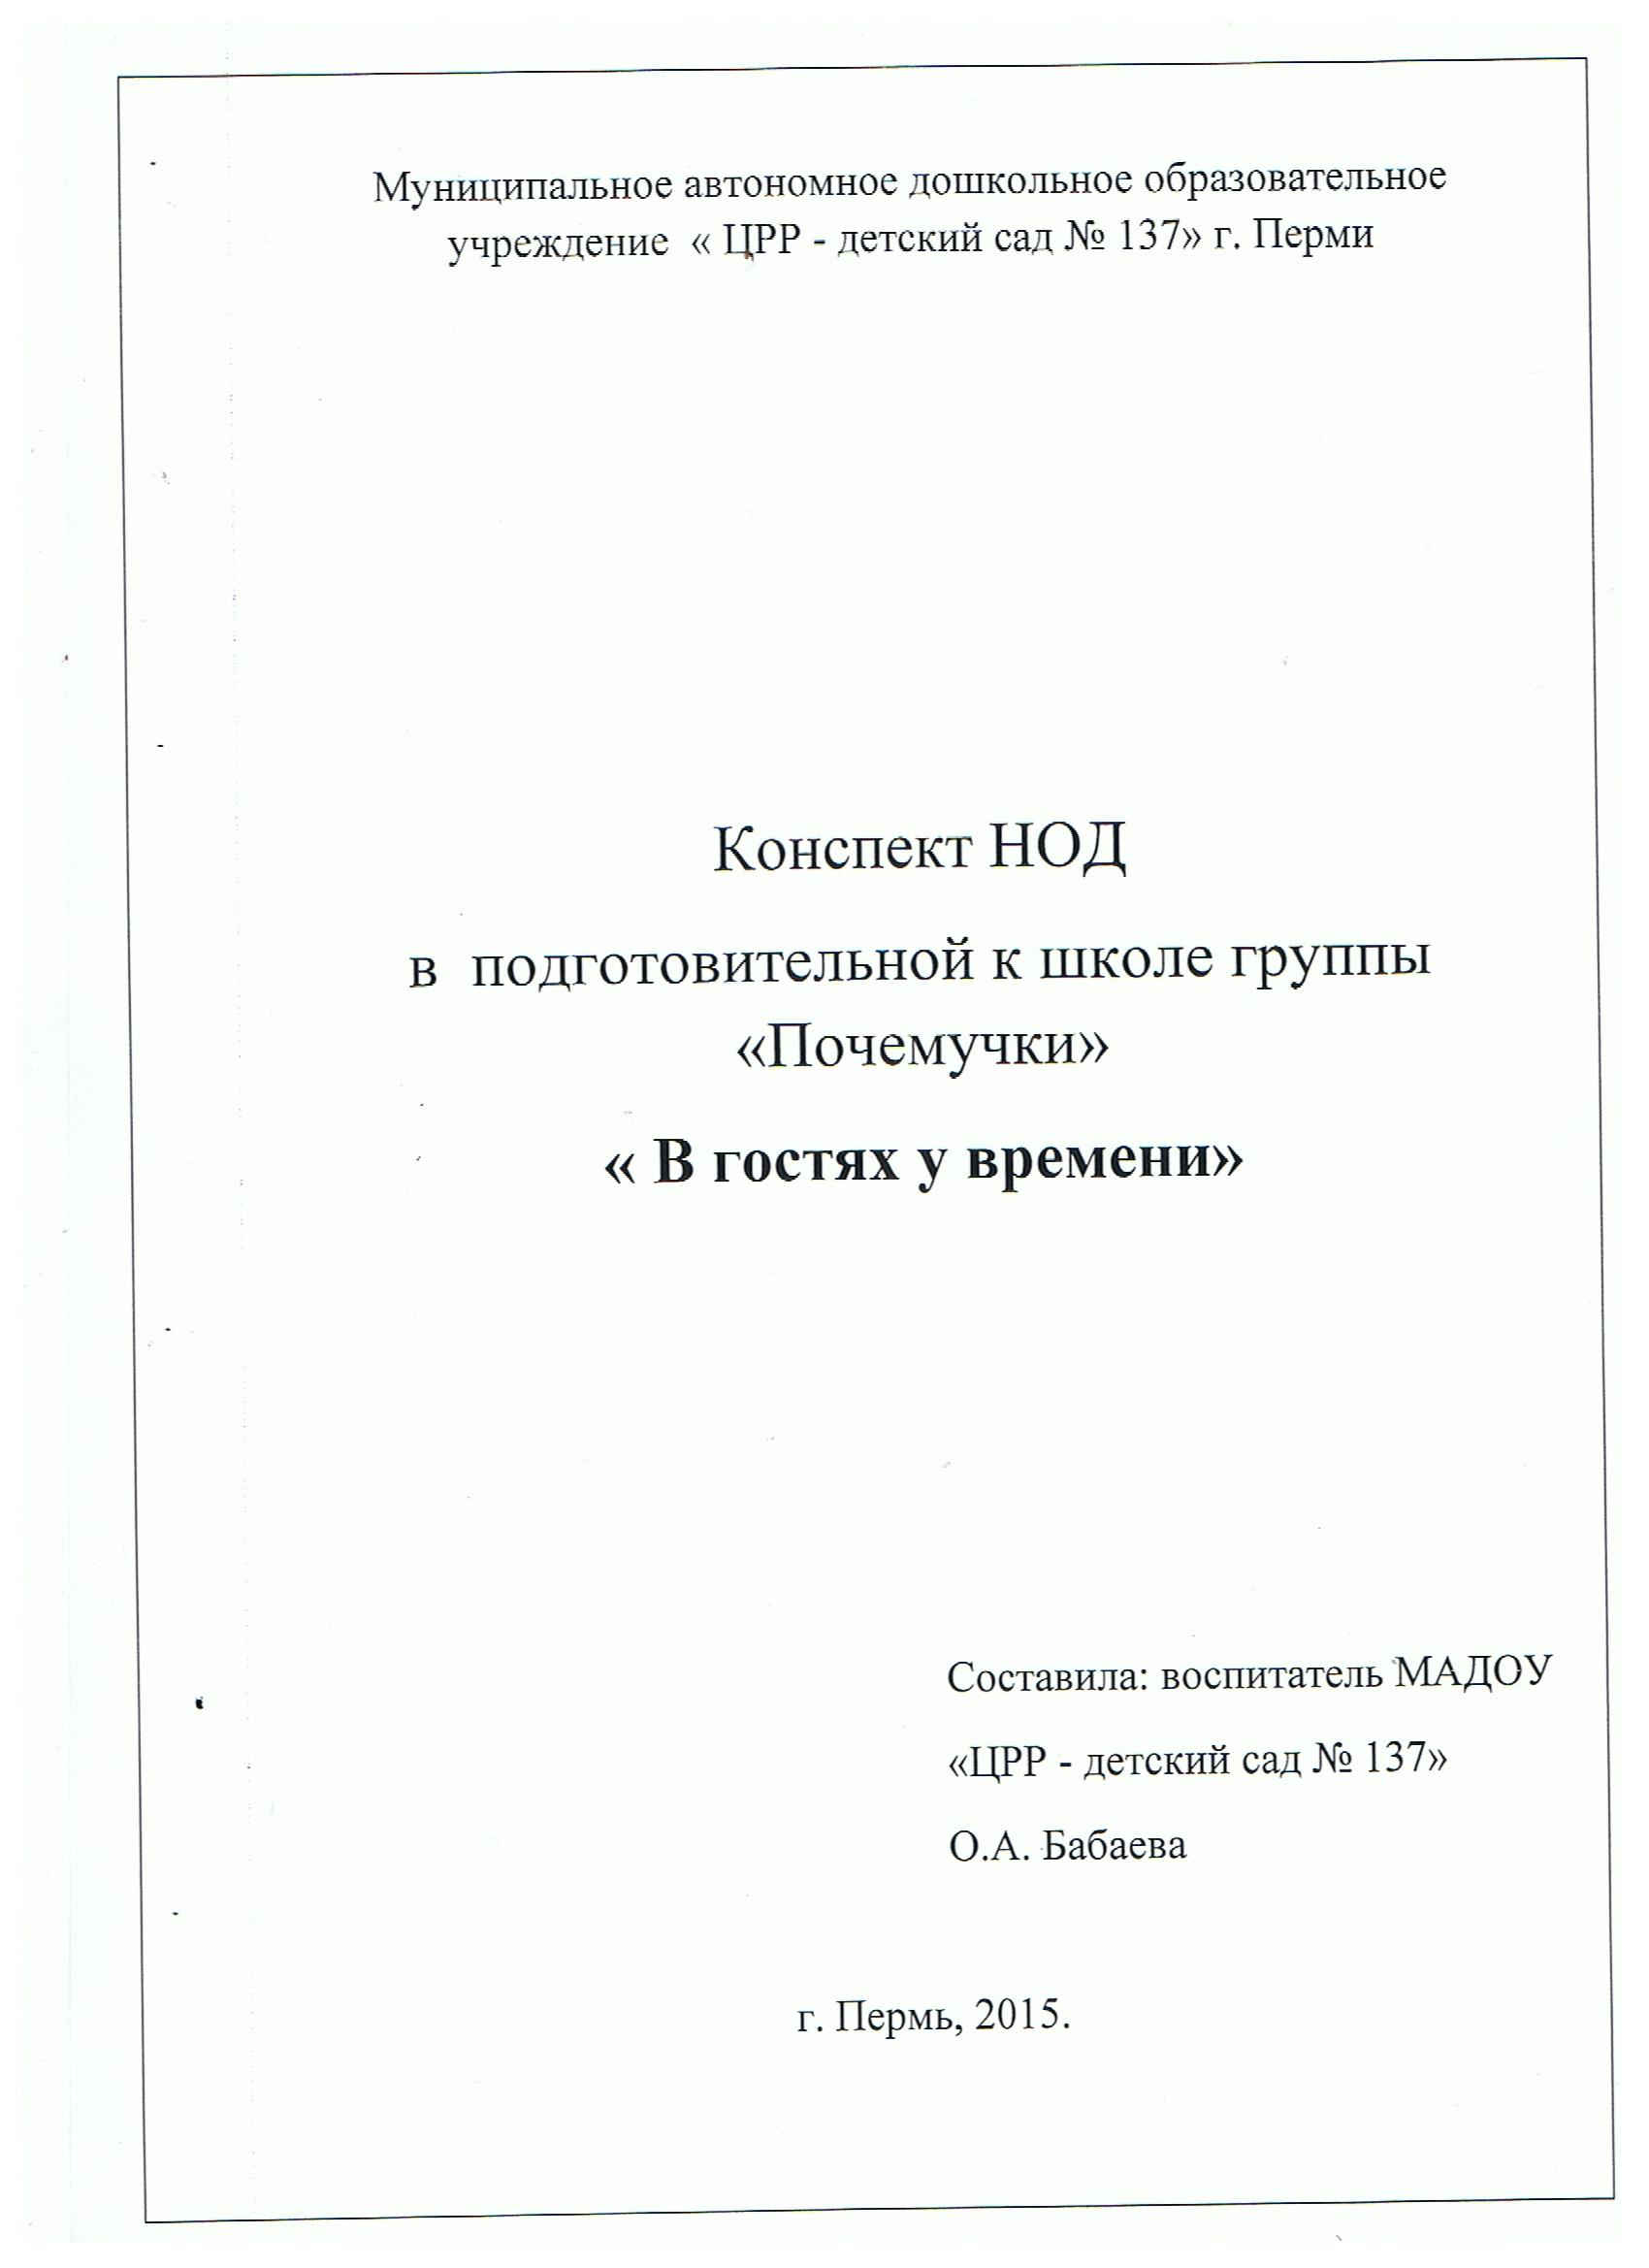 C:\Users\user\Documents\Scanned Documents\бабаева 1\Рисунок.jpg